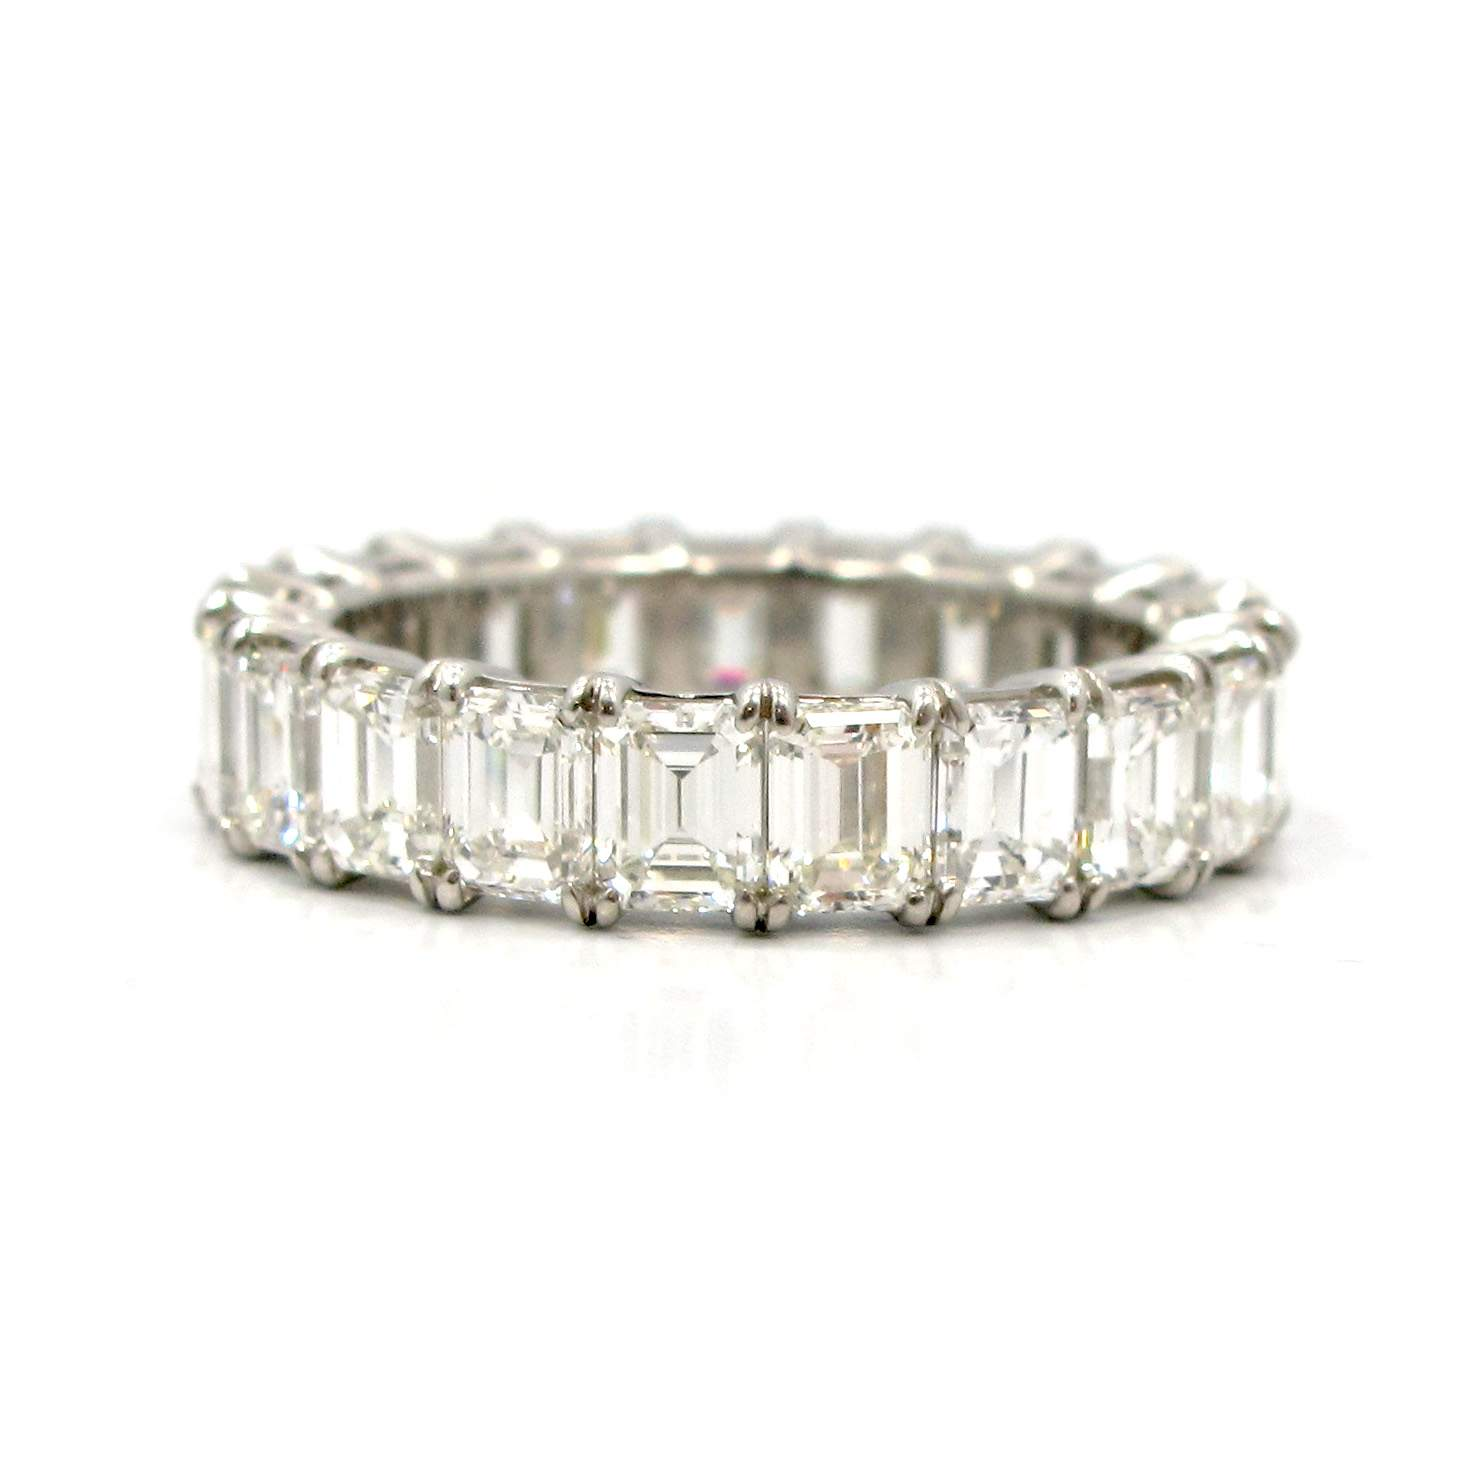 gold setting band with thin france emerald products all french diamond diamonds a furst around bands eternity ring white